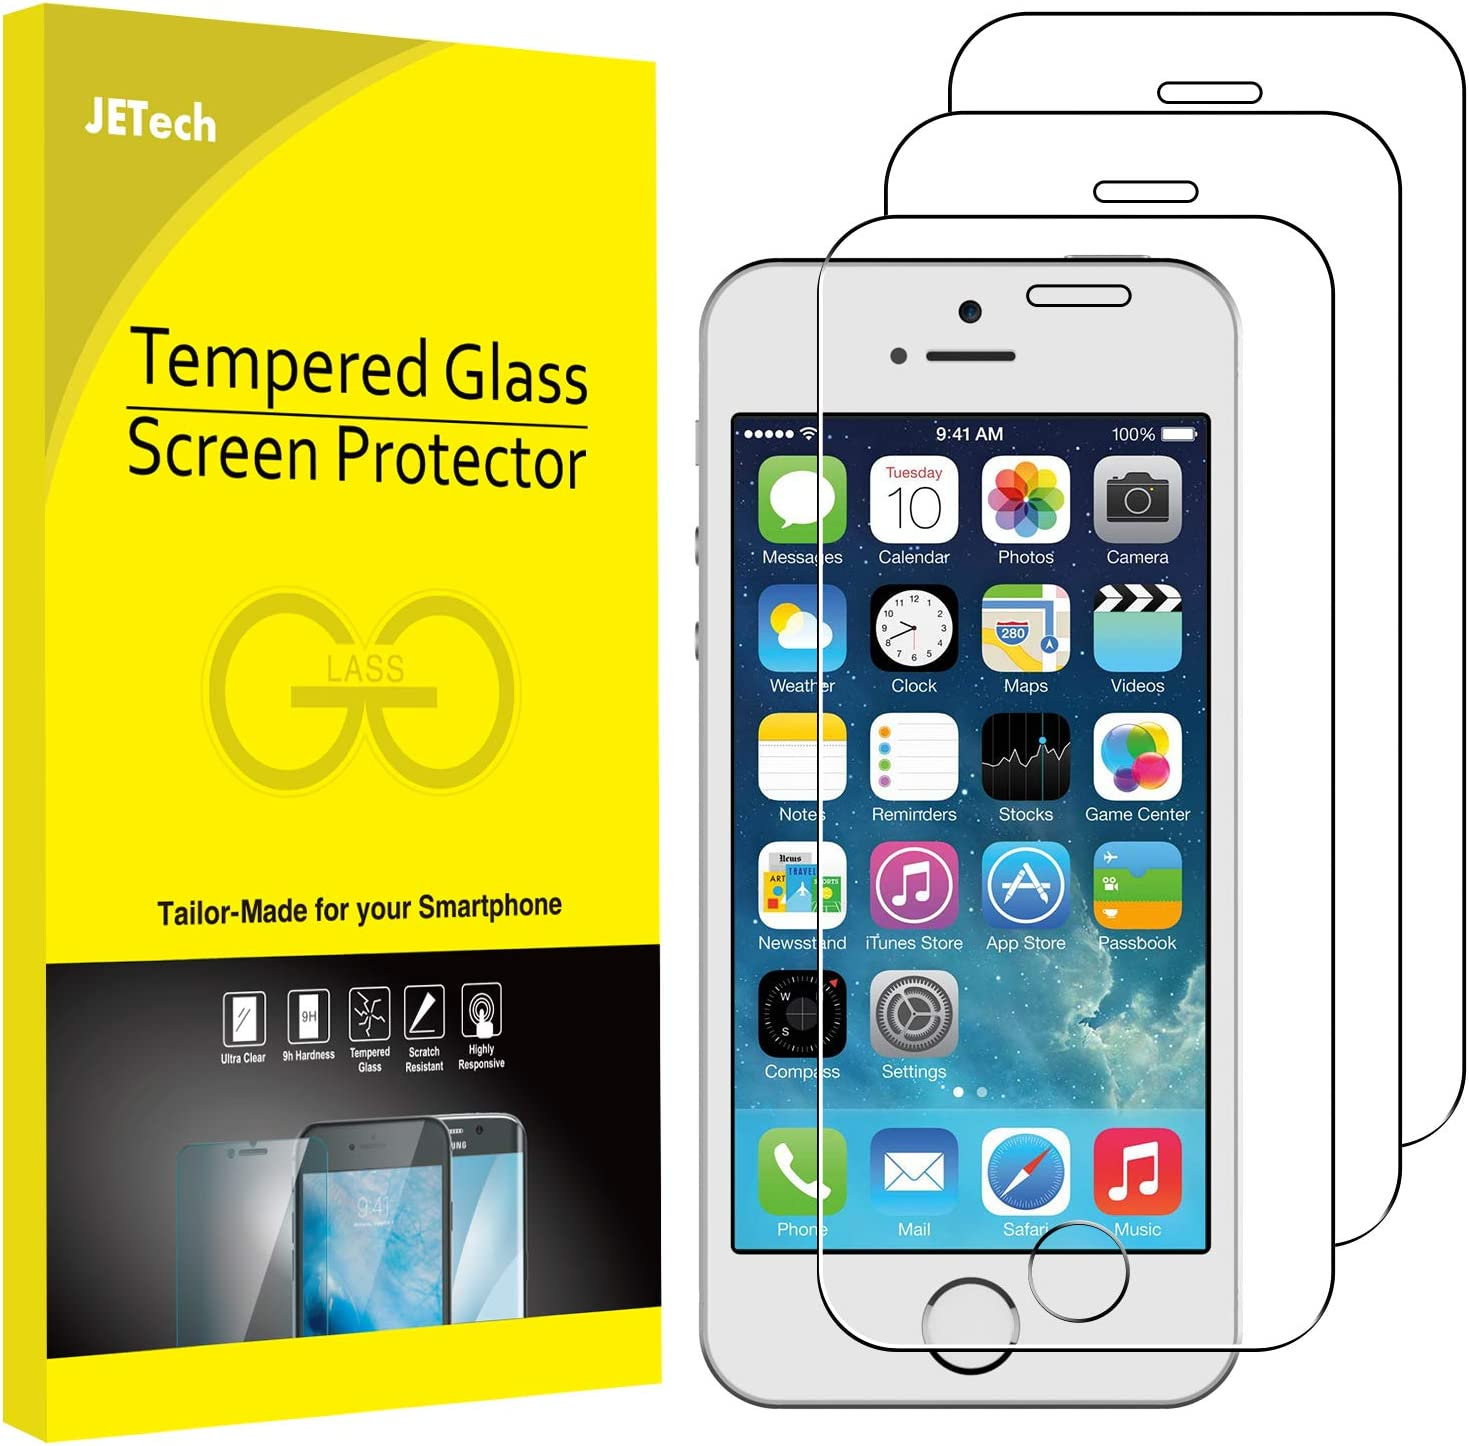 JETech Screen Protector for iPhone SE (2016 Edition), iPhone 5s, iPhone 5c and iPhone 5, Tempered Glass Film, 3-Pack